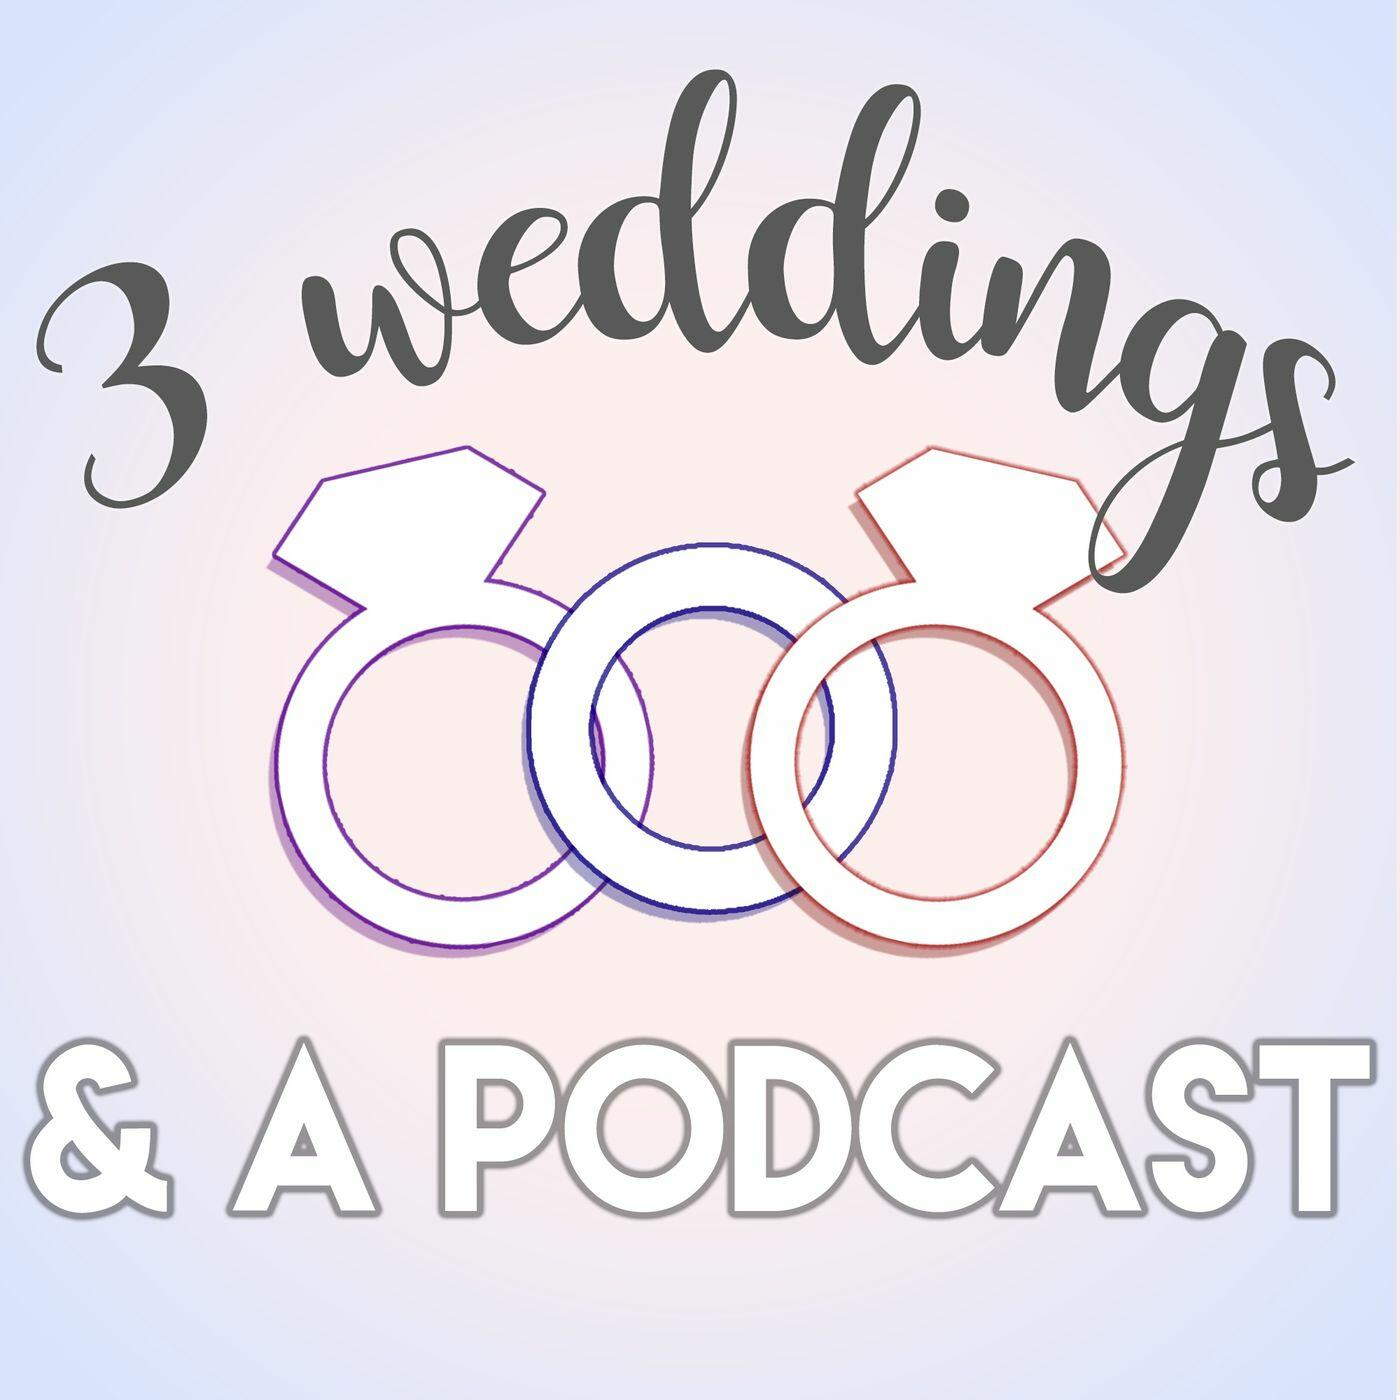 Listen to the 3 Weddings & A Podcast Episode - How do we stuff our faces AND save money?! on iHeartRadio | iHeartRadio